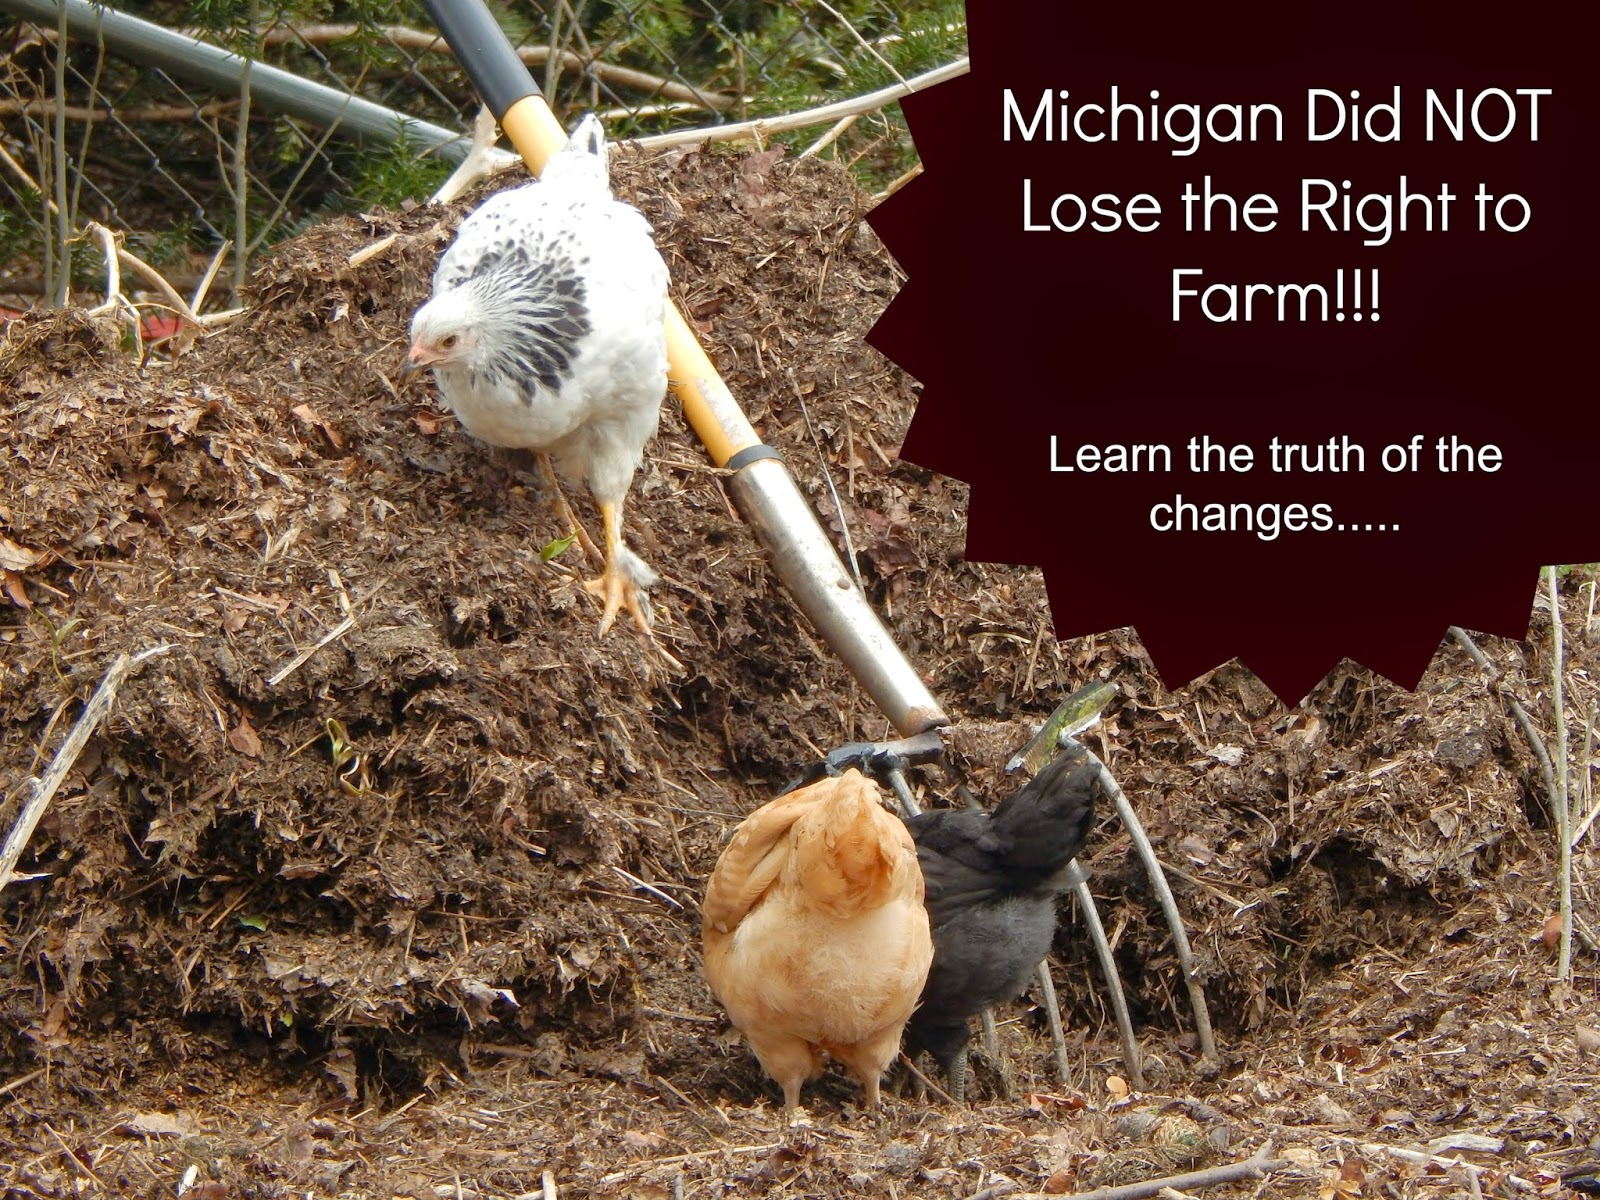 Michigan did NOT lose the right to farm this week!!!